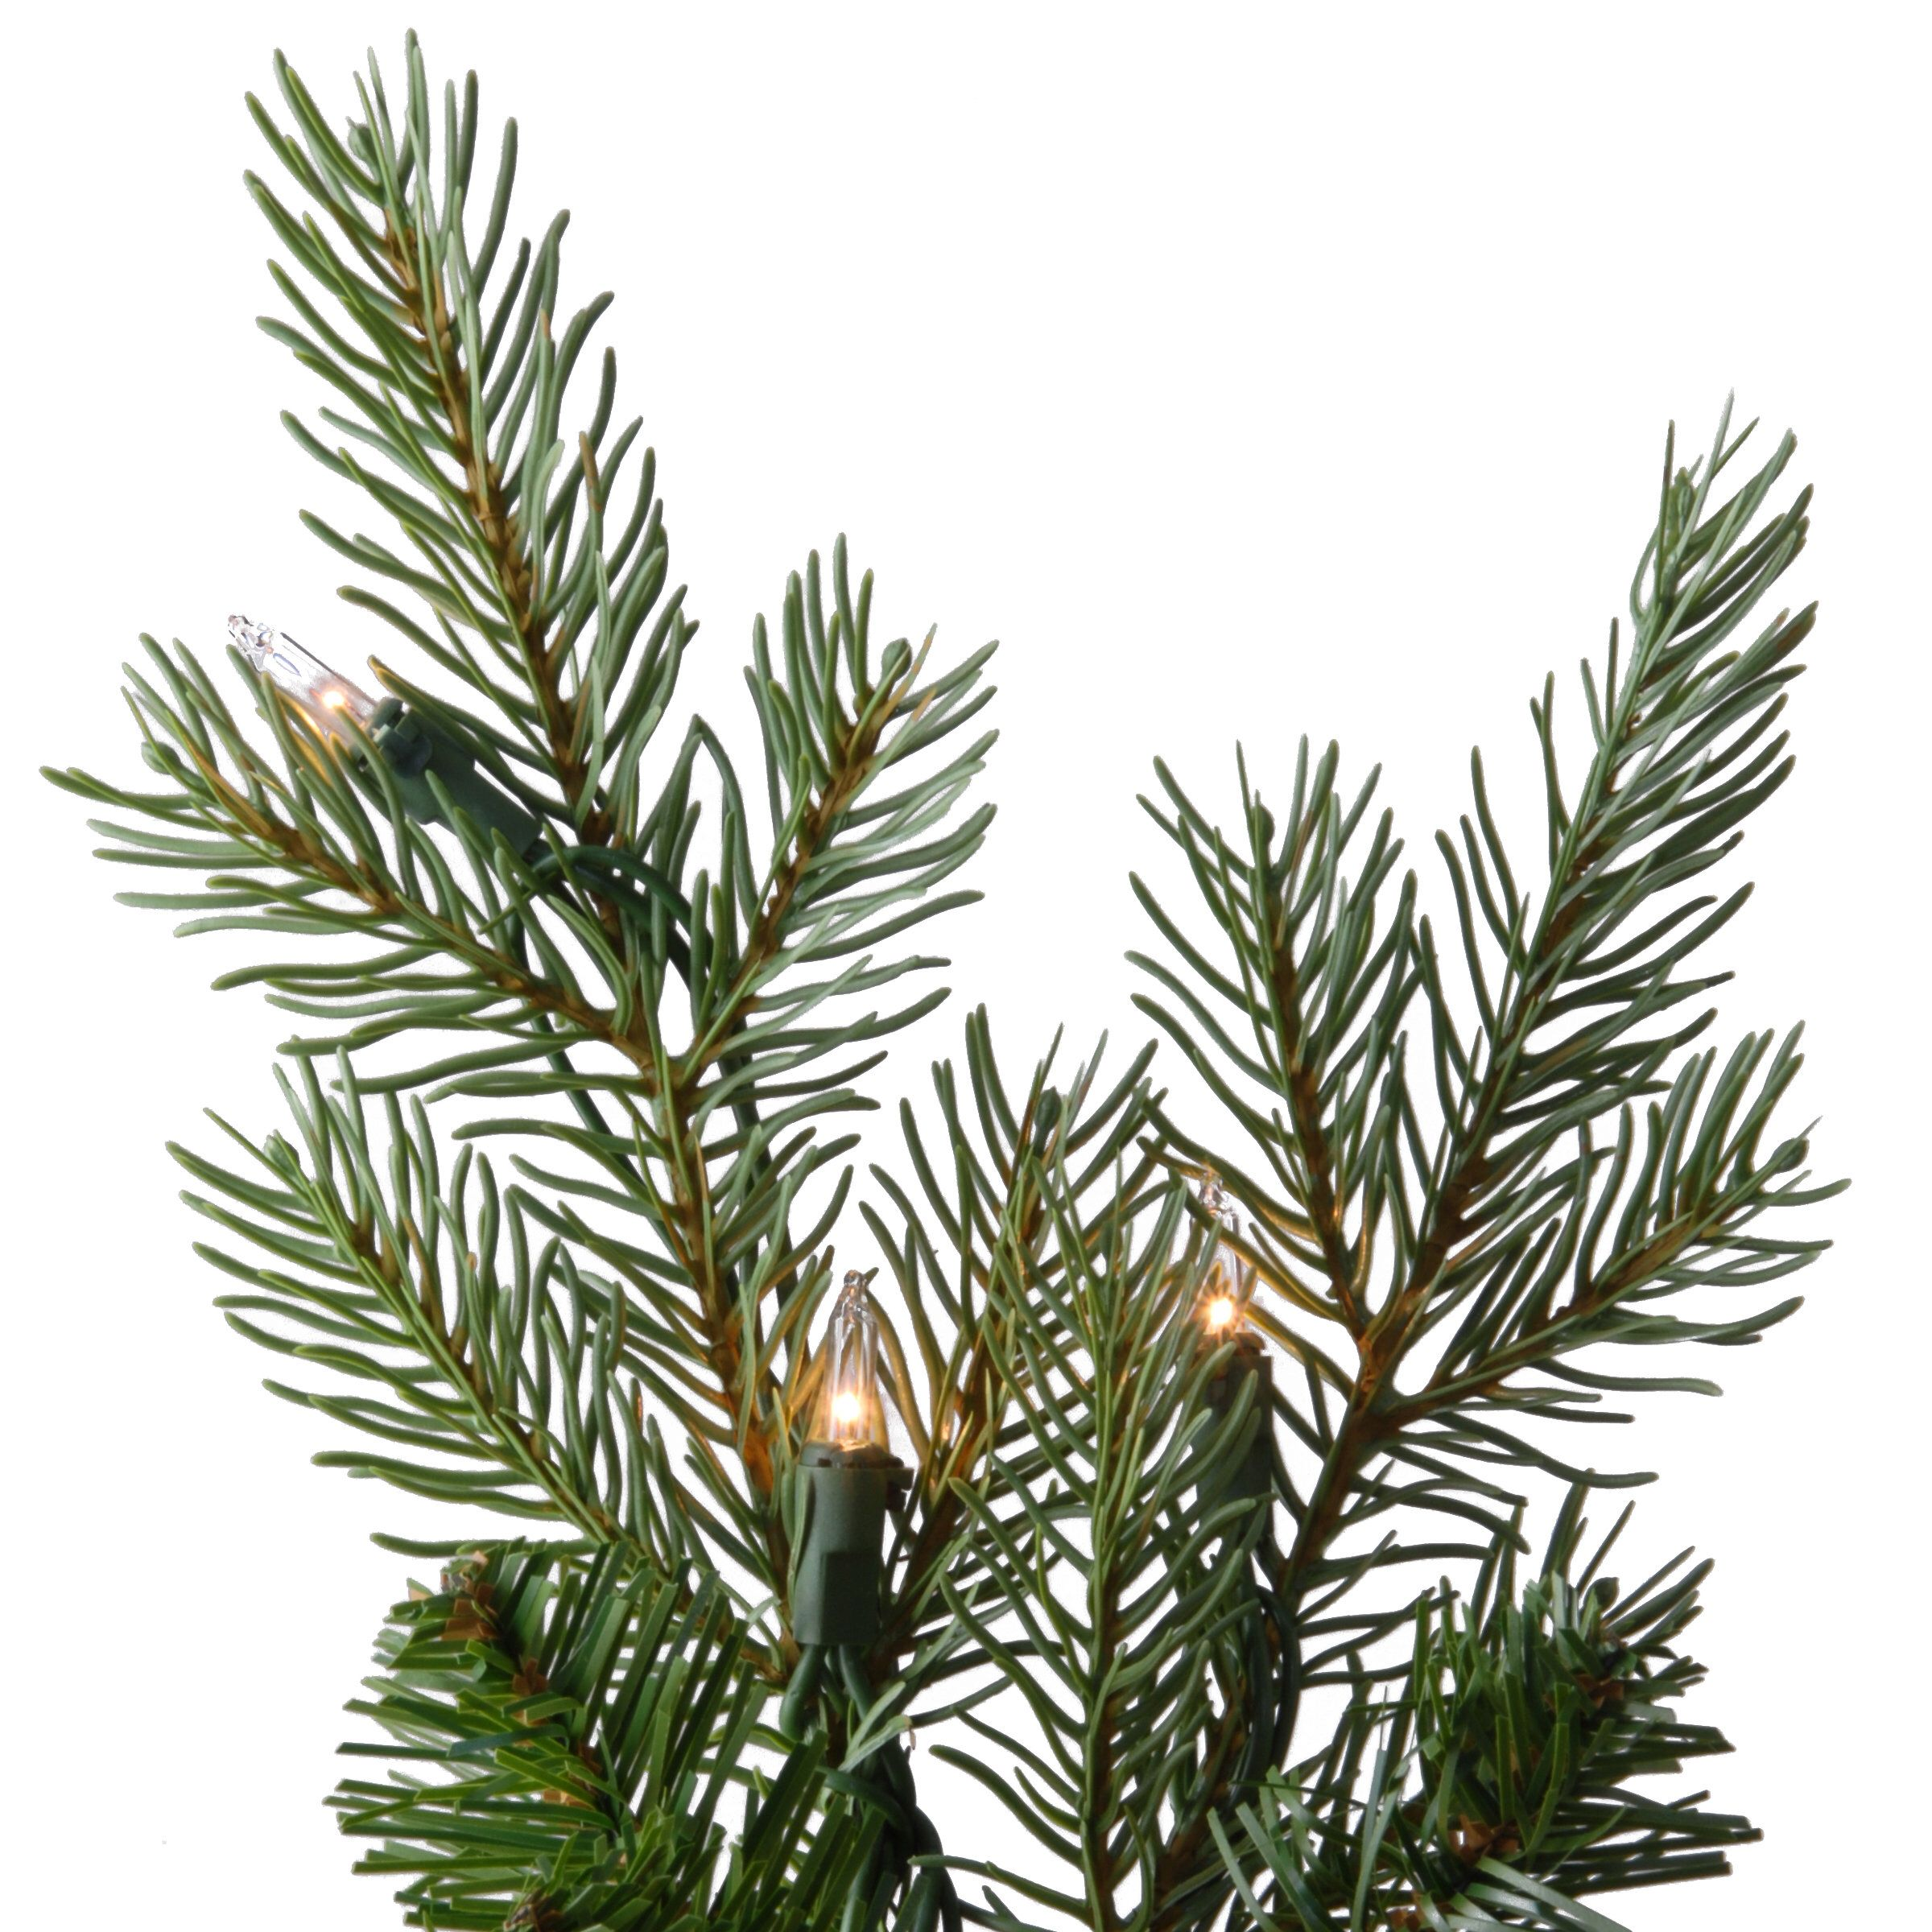 Nordic 7.5' Green Spruce Artificial Christmas Tree with